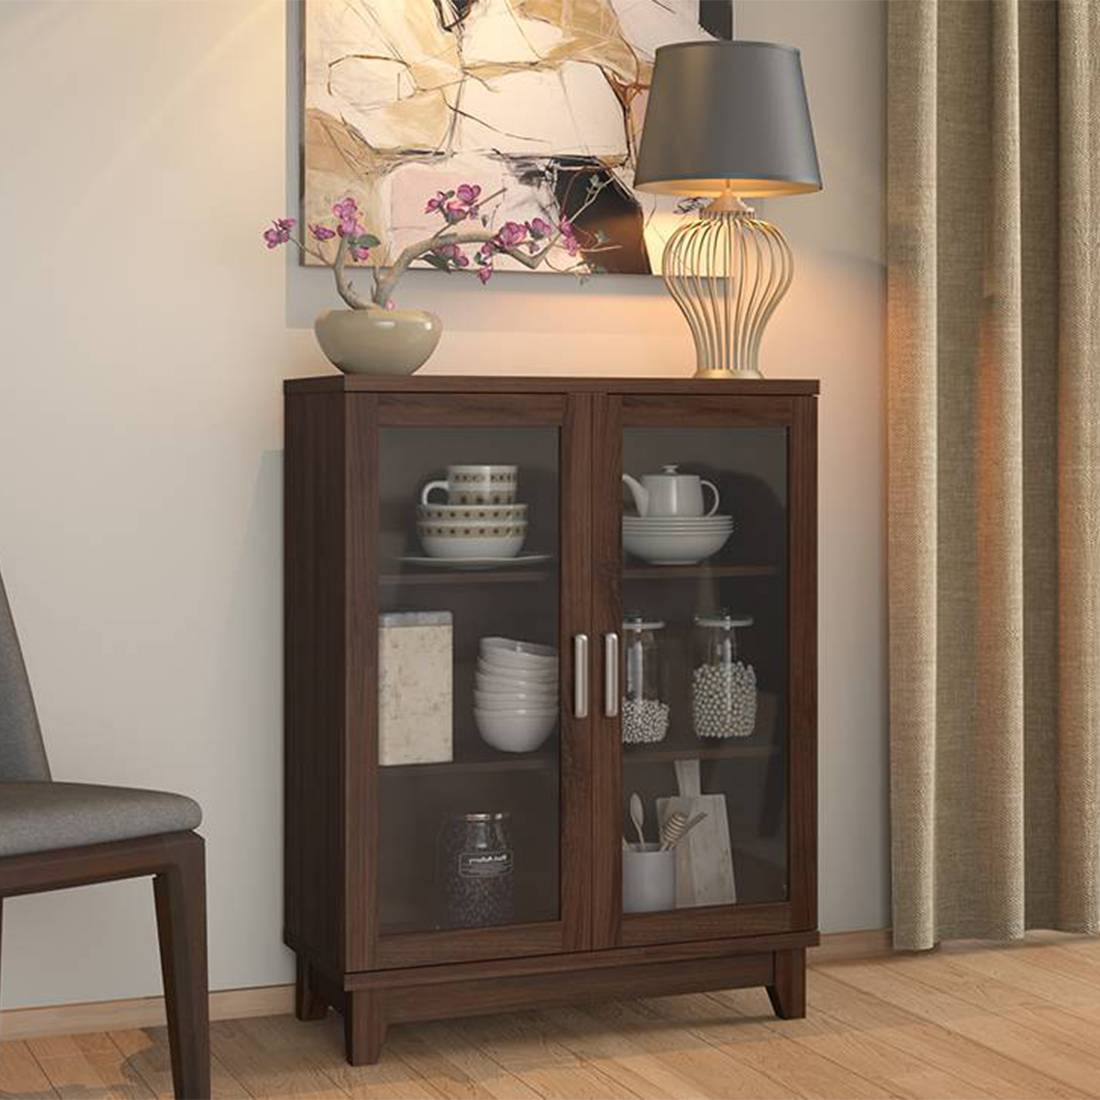 Crockery Unit Best Crockery Unit Designs Online Urban Ladder